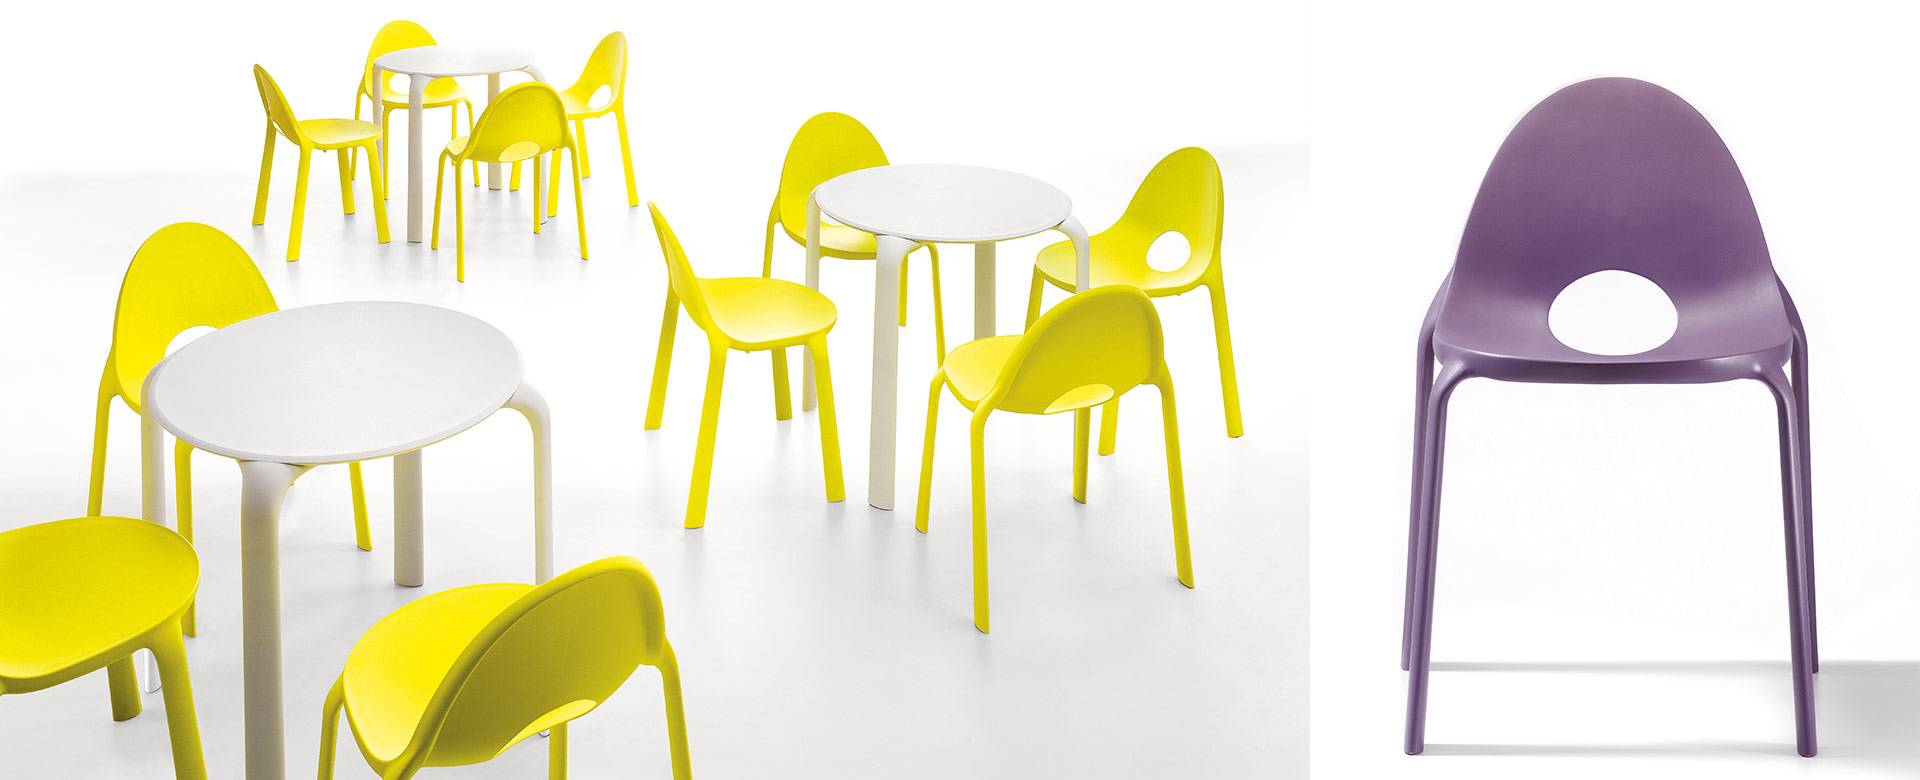 STILLA Outdoor Chairs & Tables